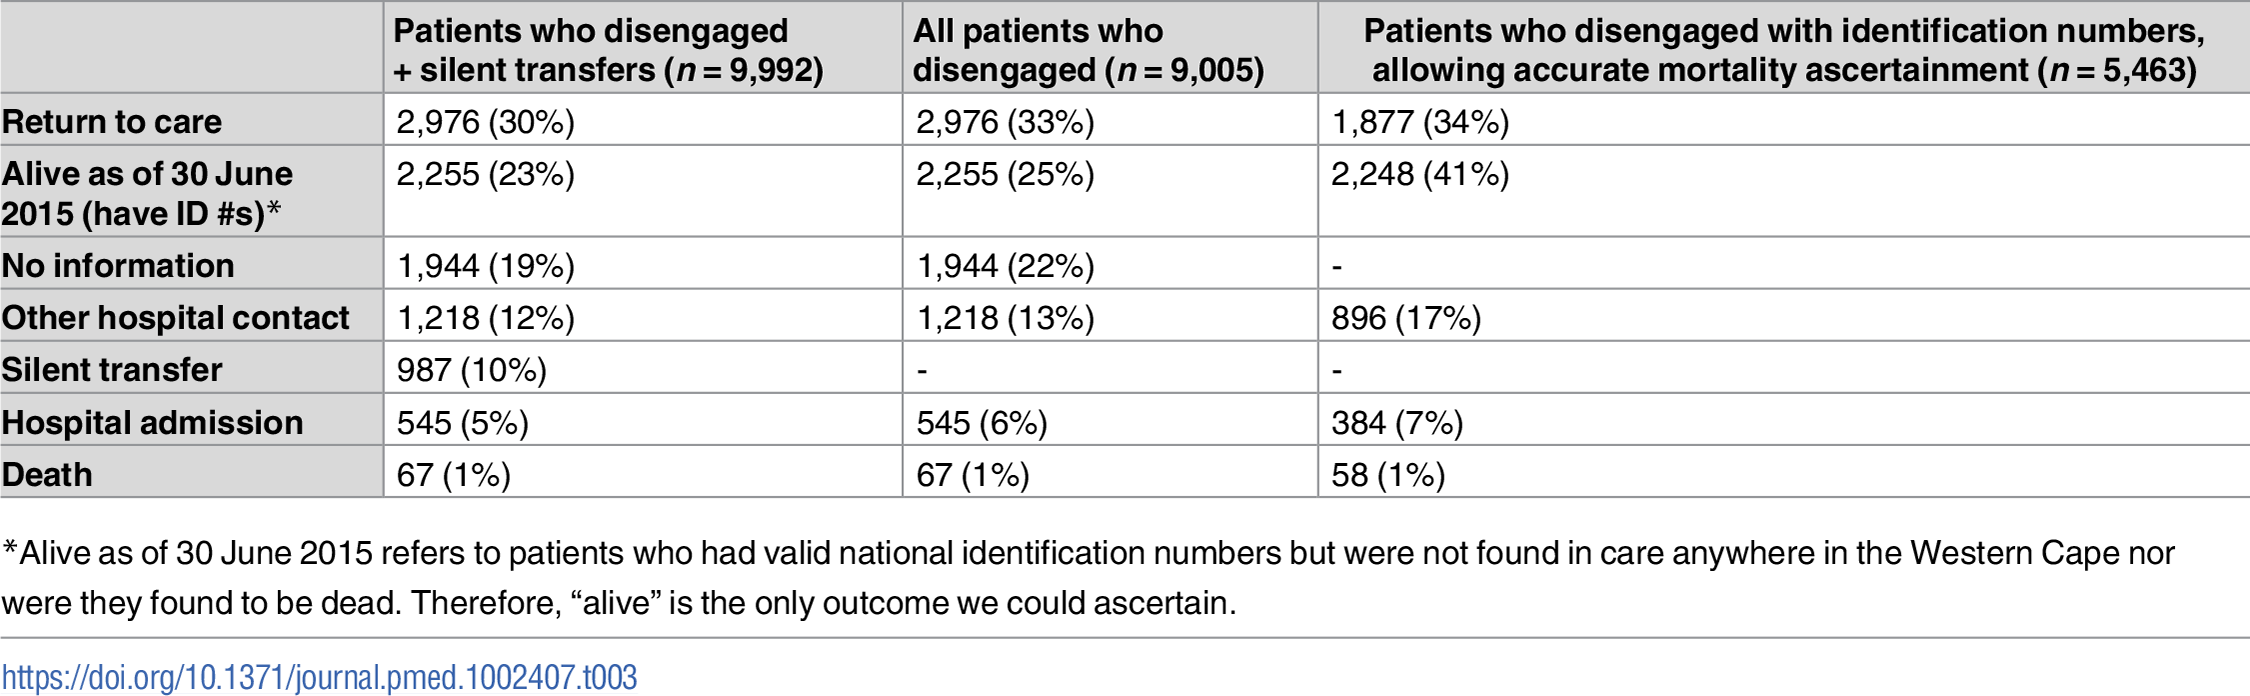 Initial outcomes for patients who disengaged, as ascertained from Western Cape province data systems until 30 June 2015.